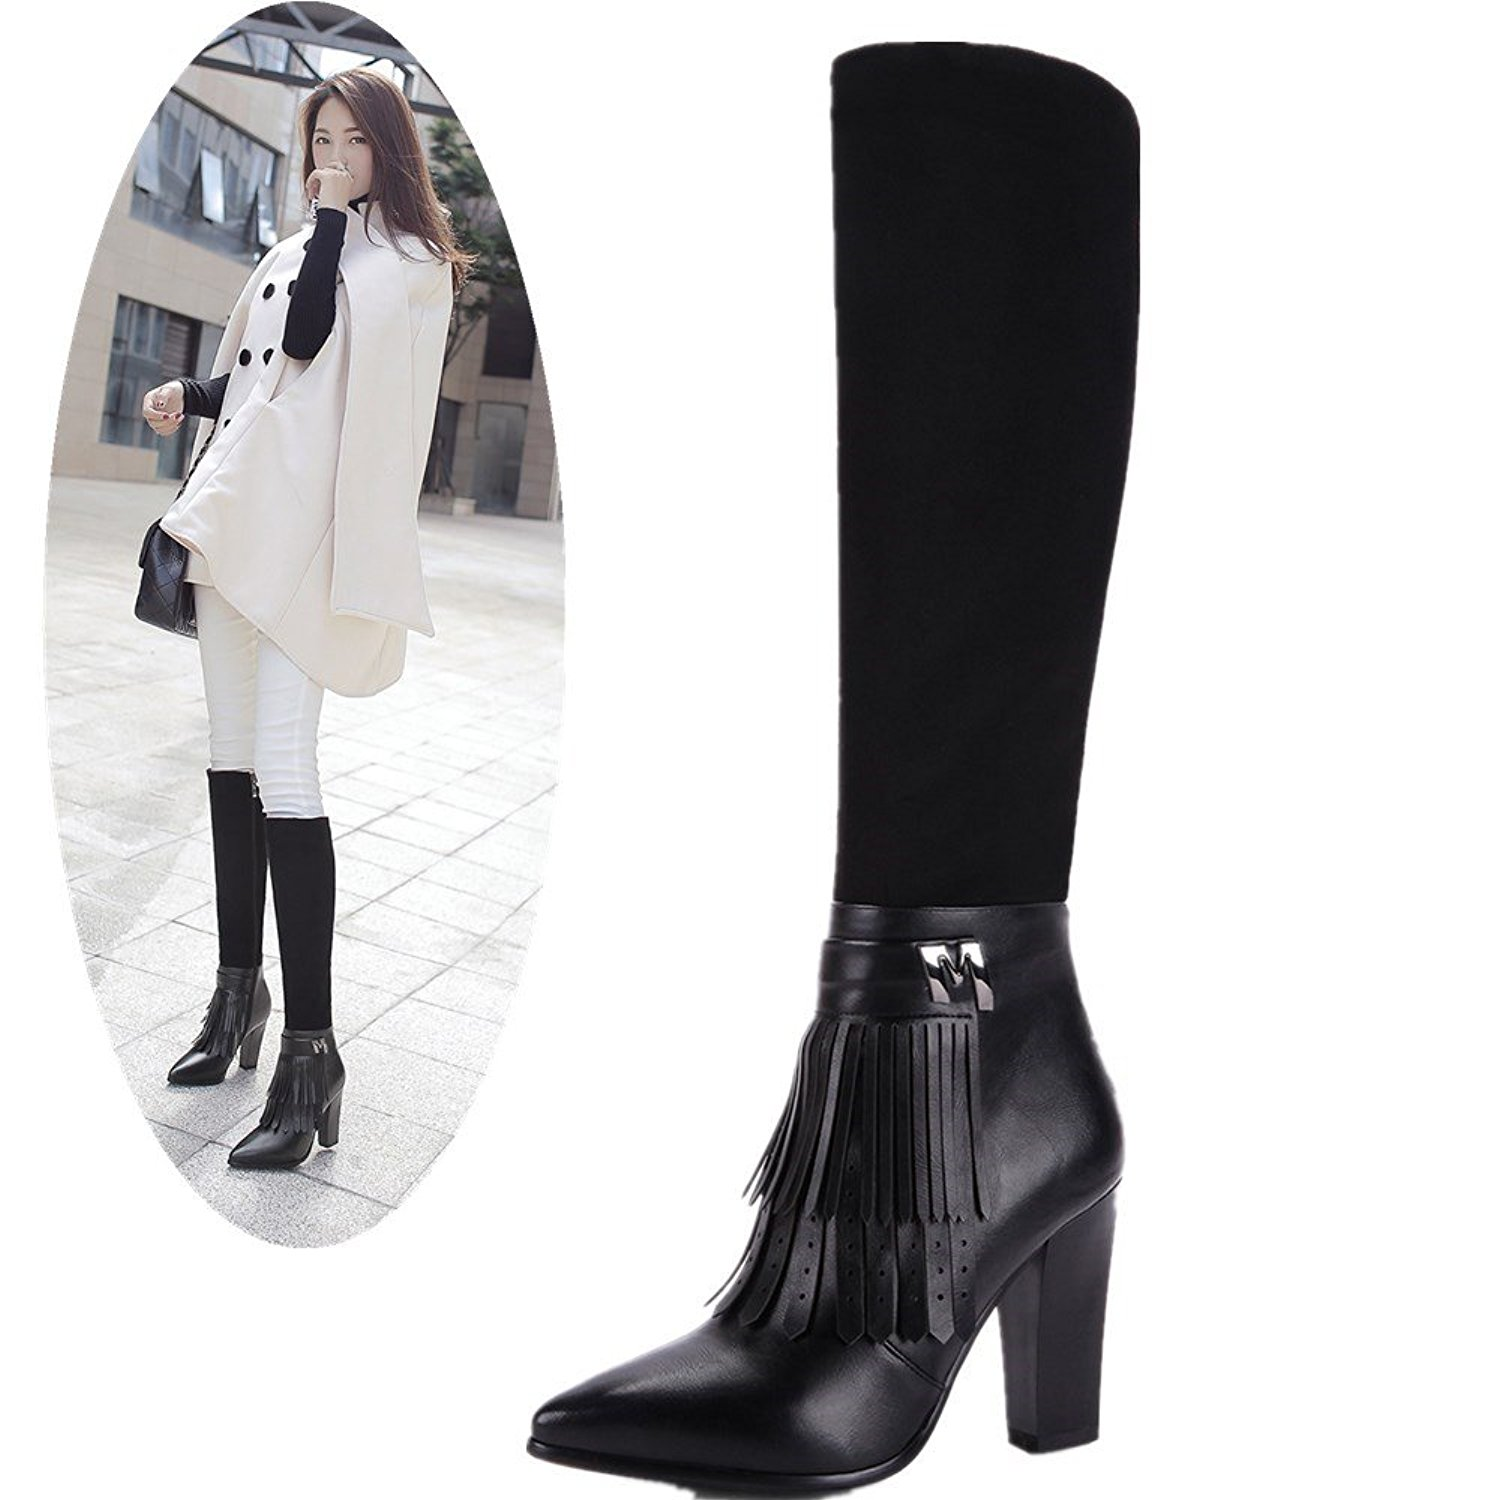 7e330cac47 Get Quotations · NIQI Women High Heel Boots Pointed Toe Knee High Heel  Fringe Boots Suede Leather Tall Boots